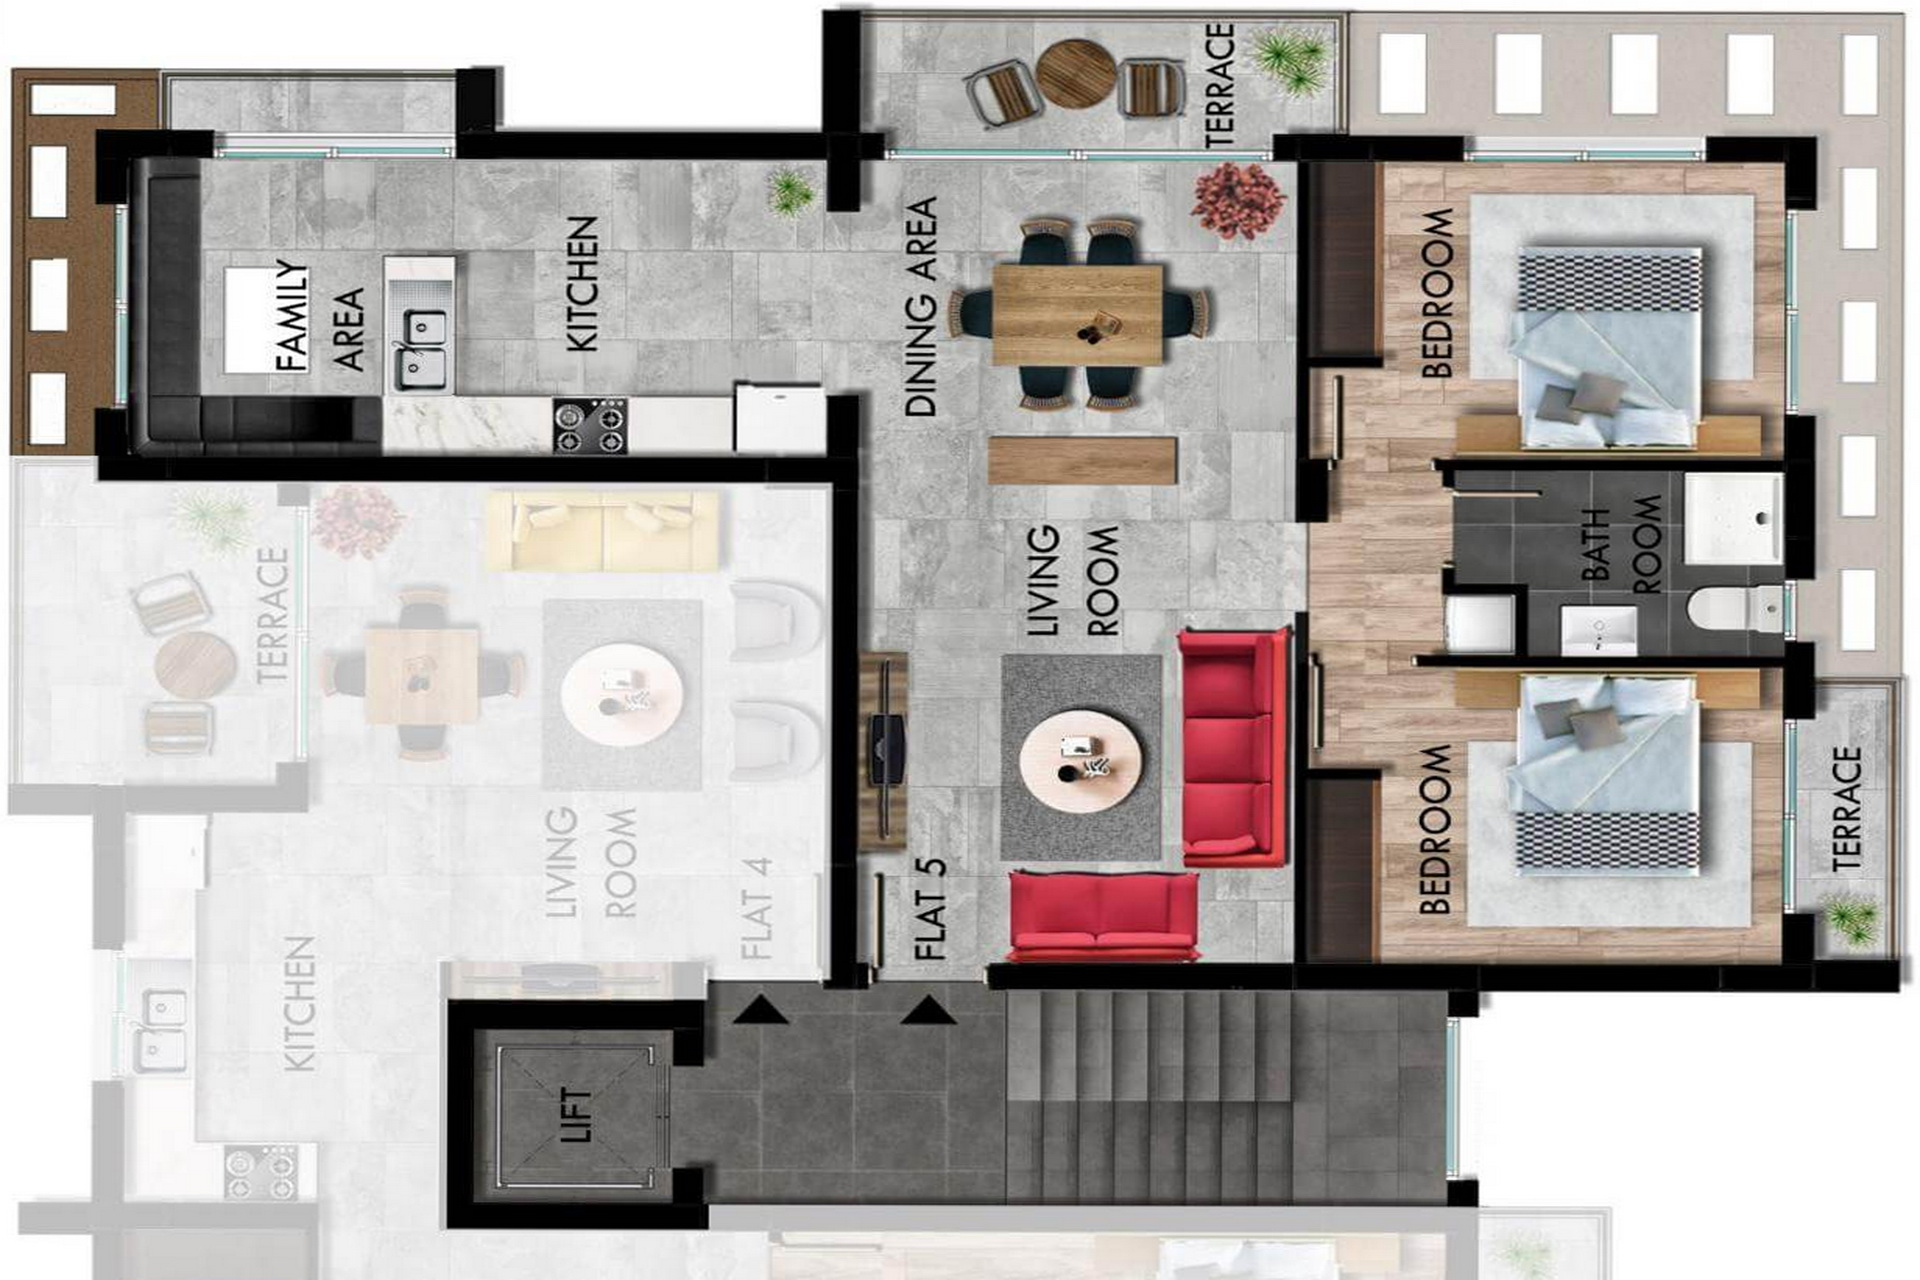 2 Bedroom Apartment of 100m² in Long Beach